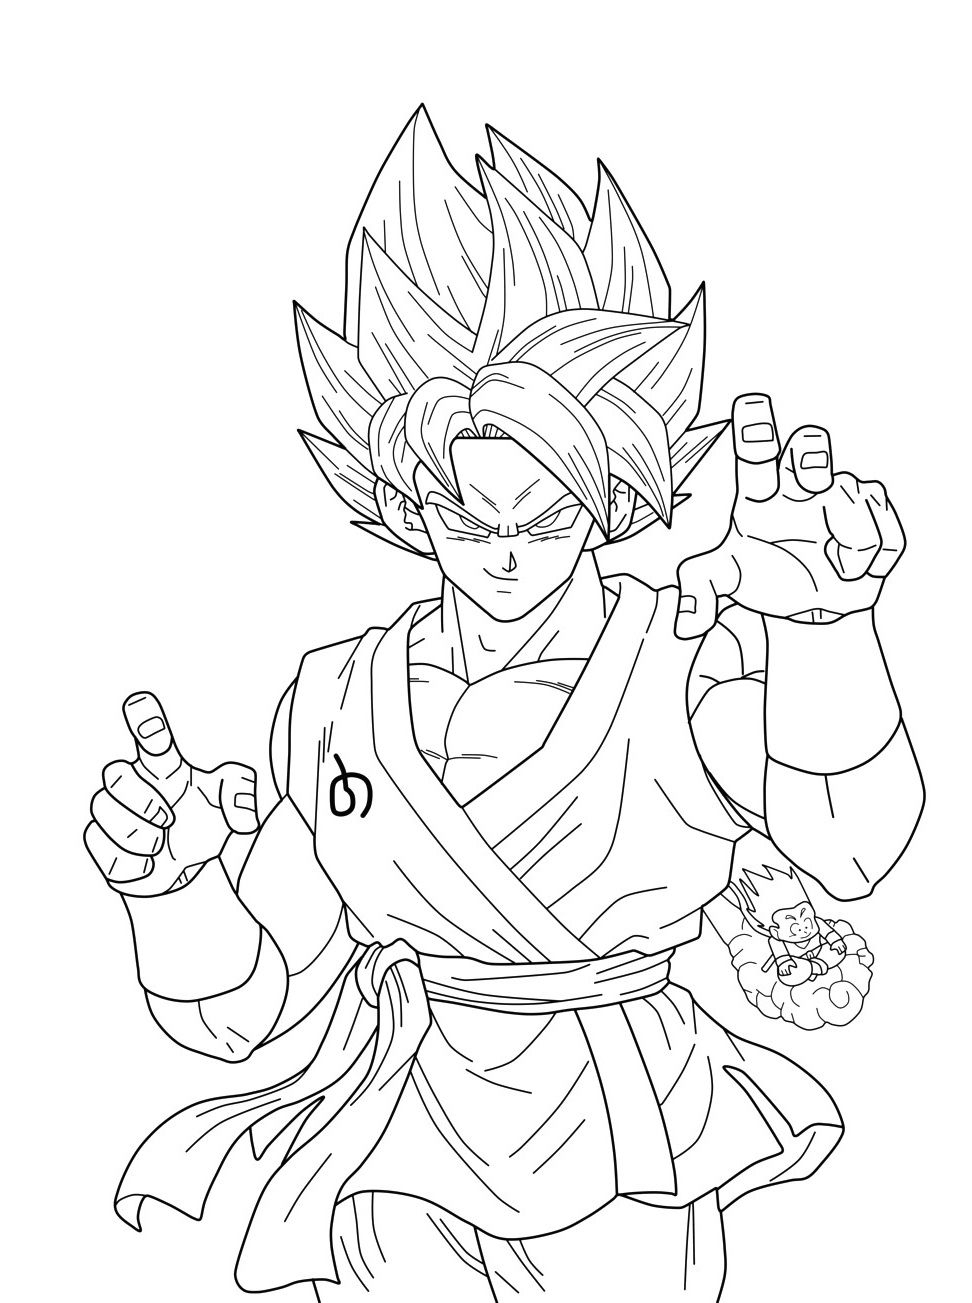 Facile Dragon Ball Broly Super Sayian Legendaire Coloriage serapportantà Coloriage Dragon Ball Z Super